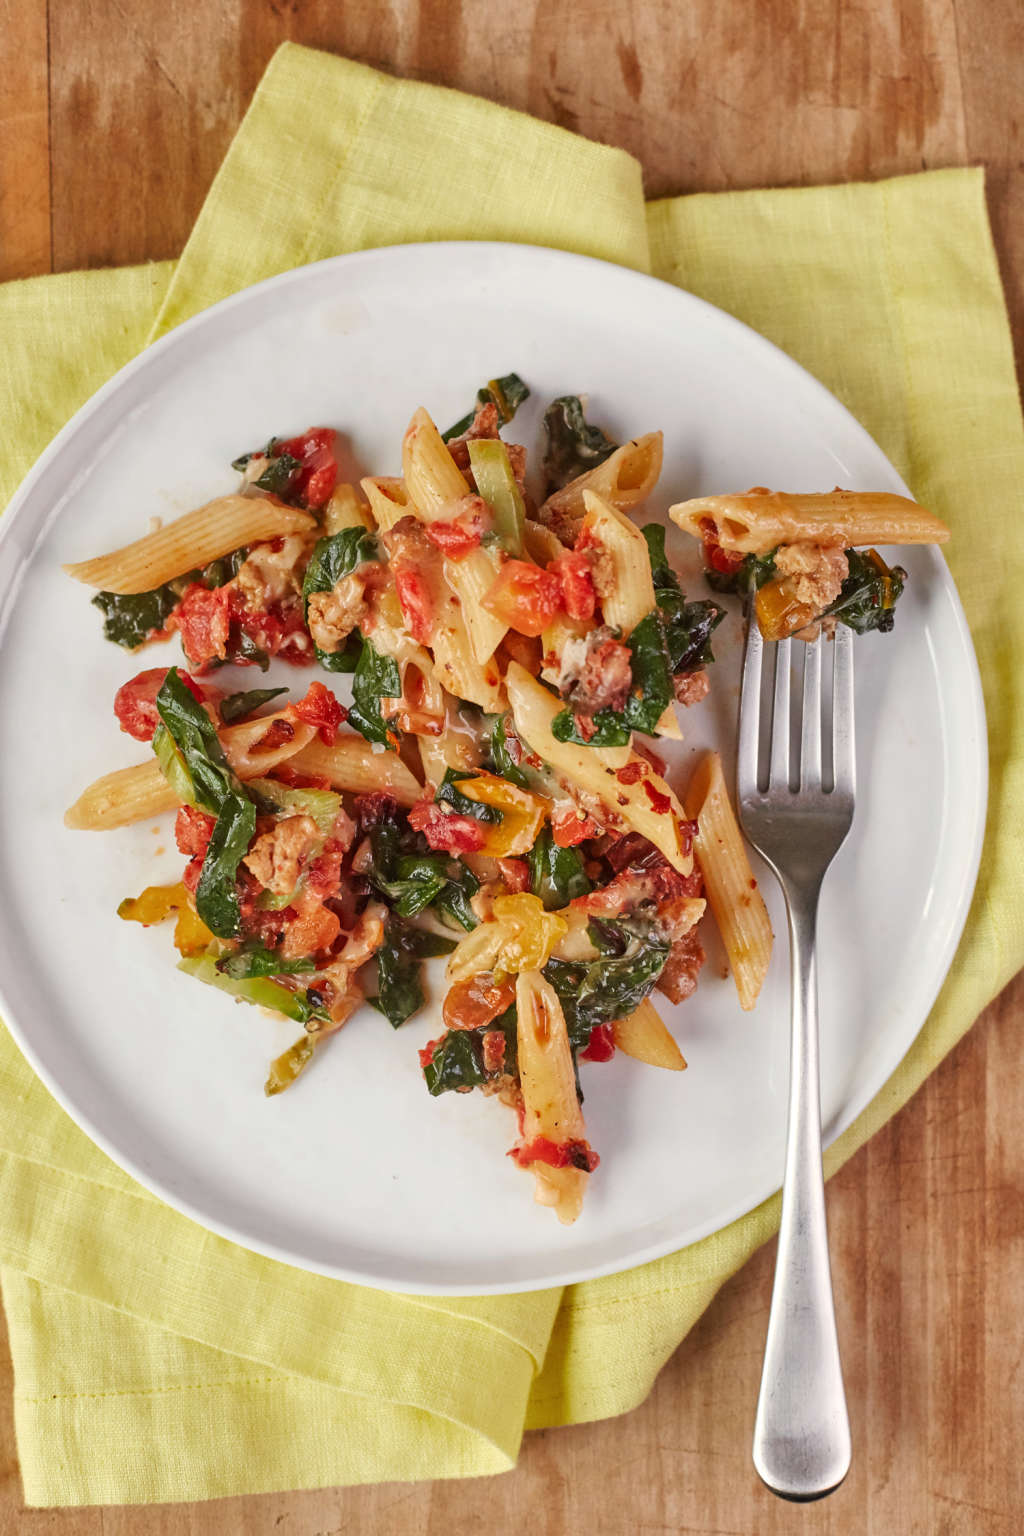 Get Your Veggies in with This Turkey & Greens Skillet Pasta